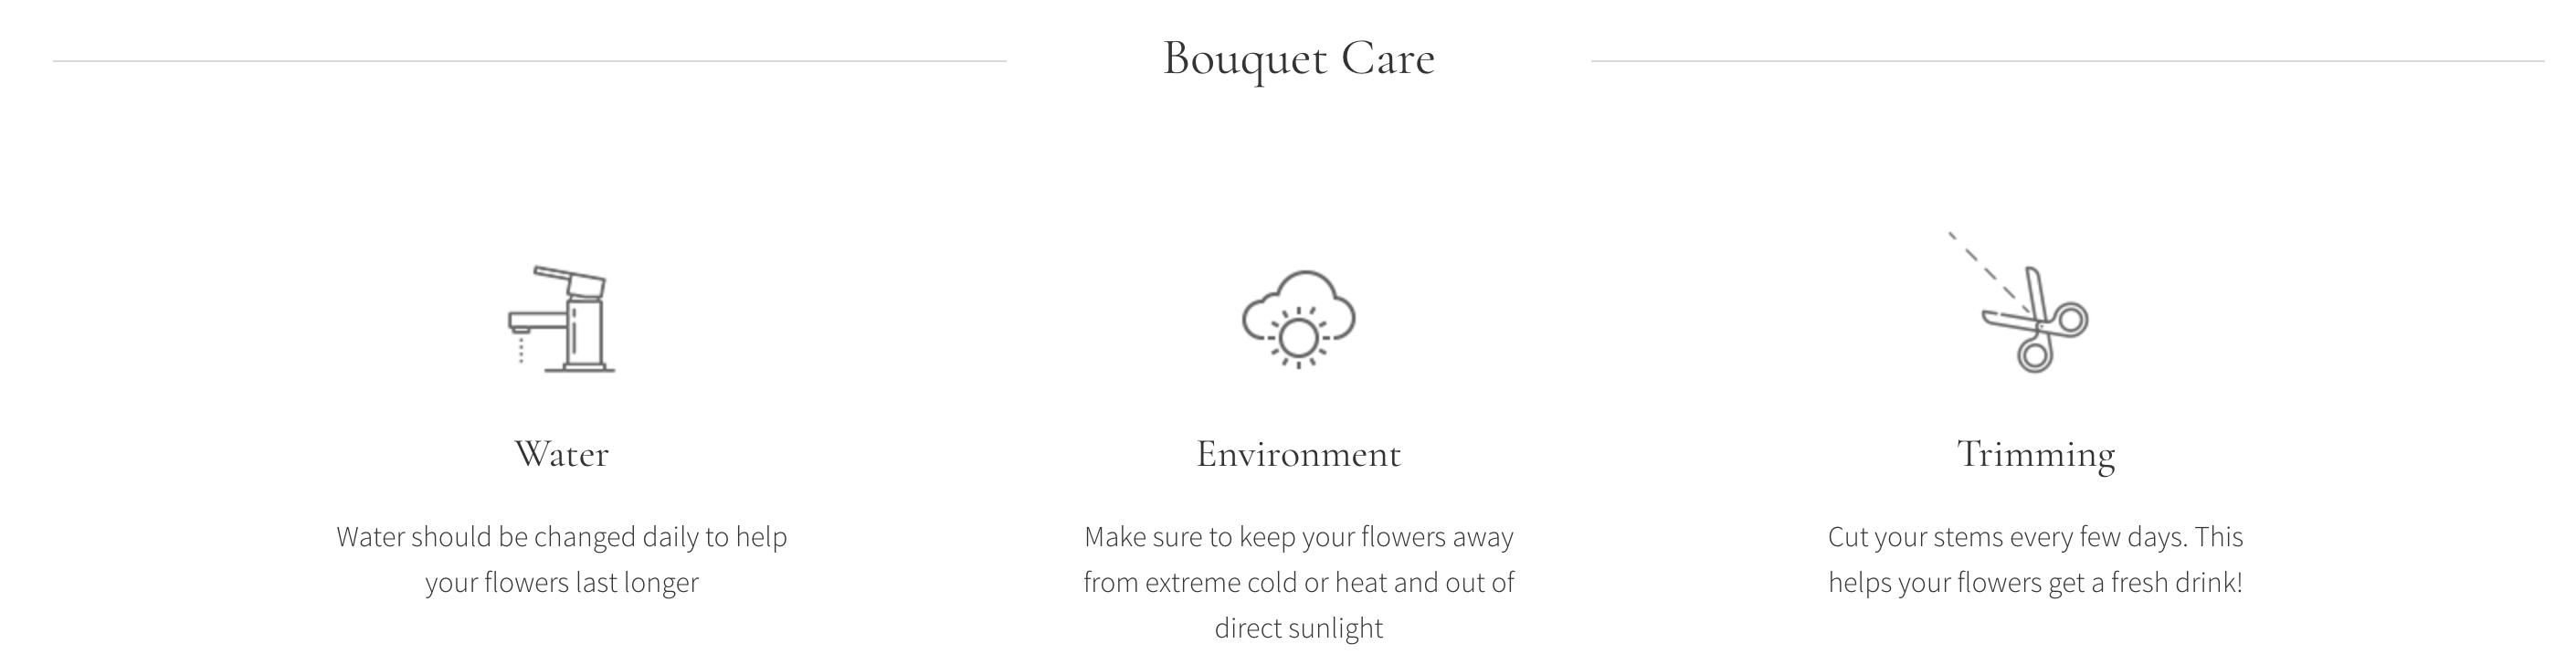 Bouquet Care, Milton Flower Delivery - Karen's Flower Shop.png